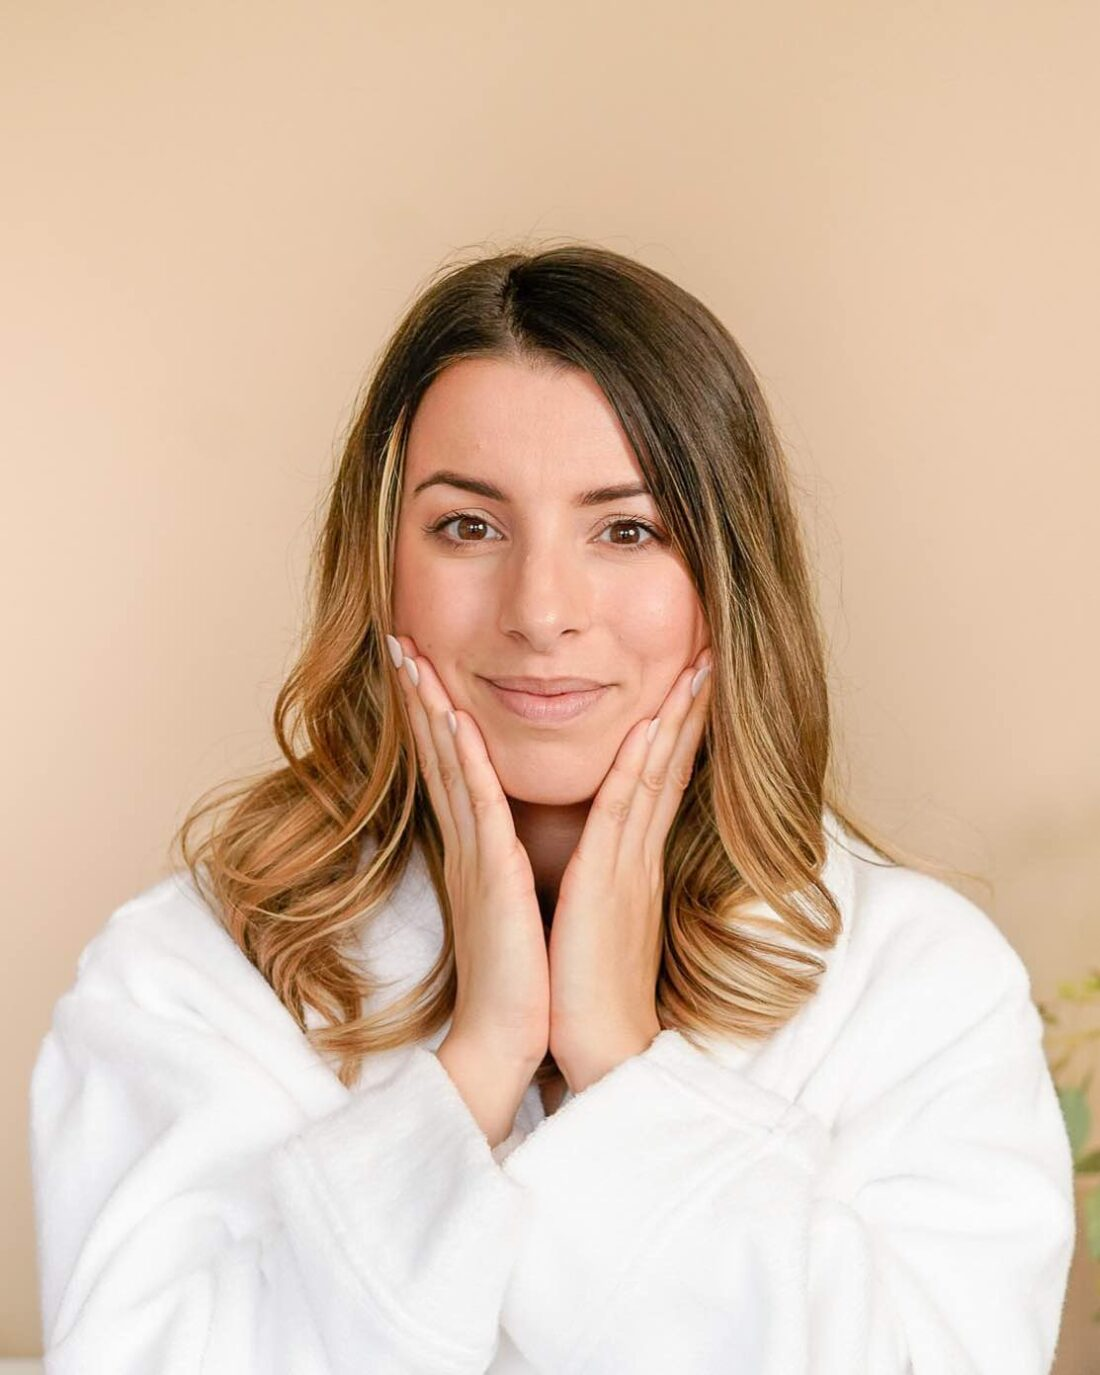 woman wearing a white dressing gown pressing her hands to her face